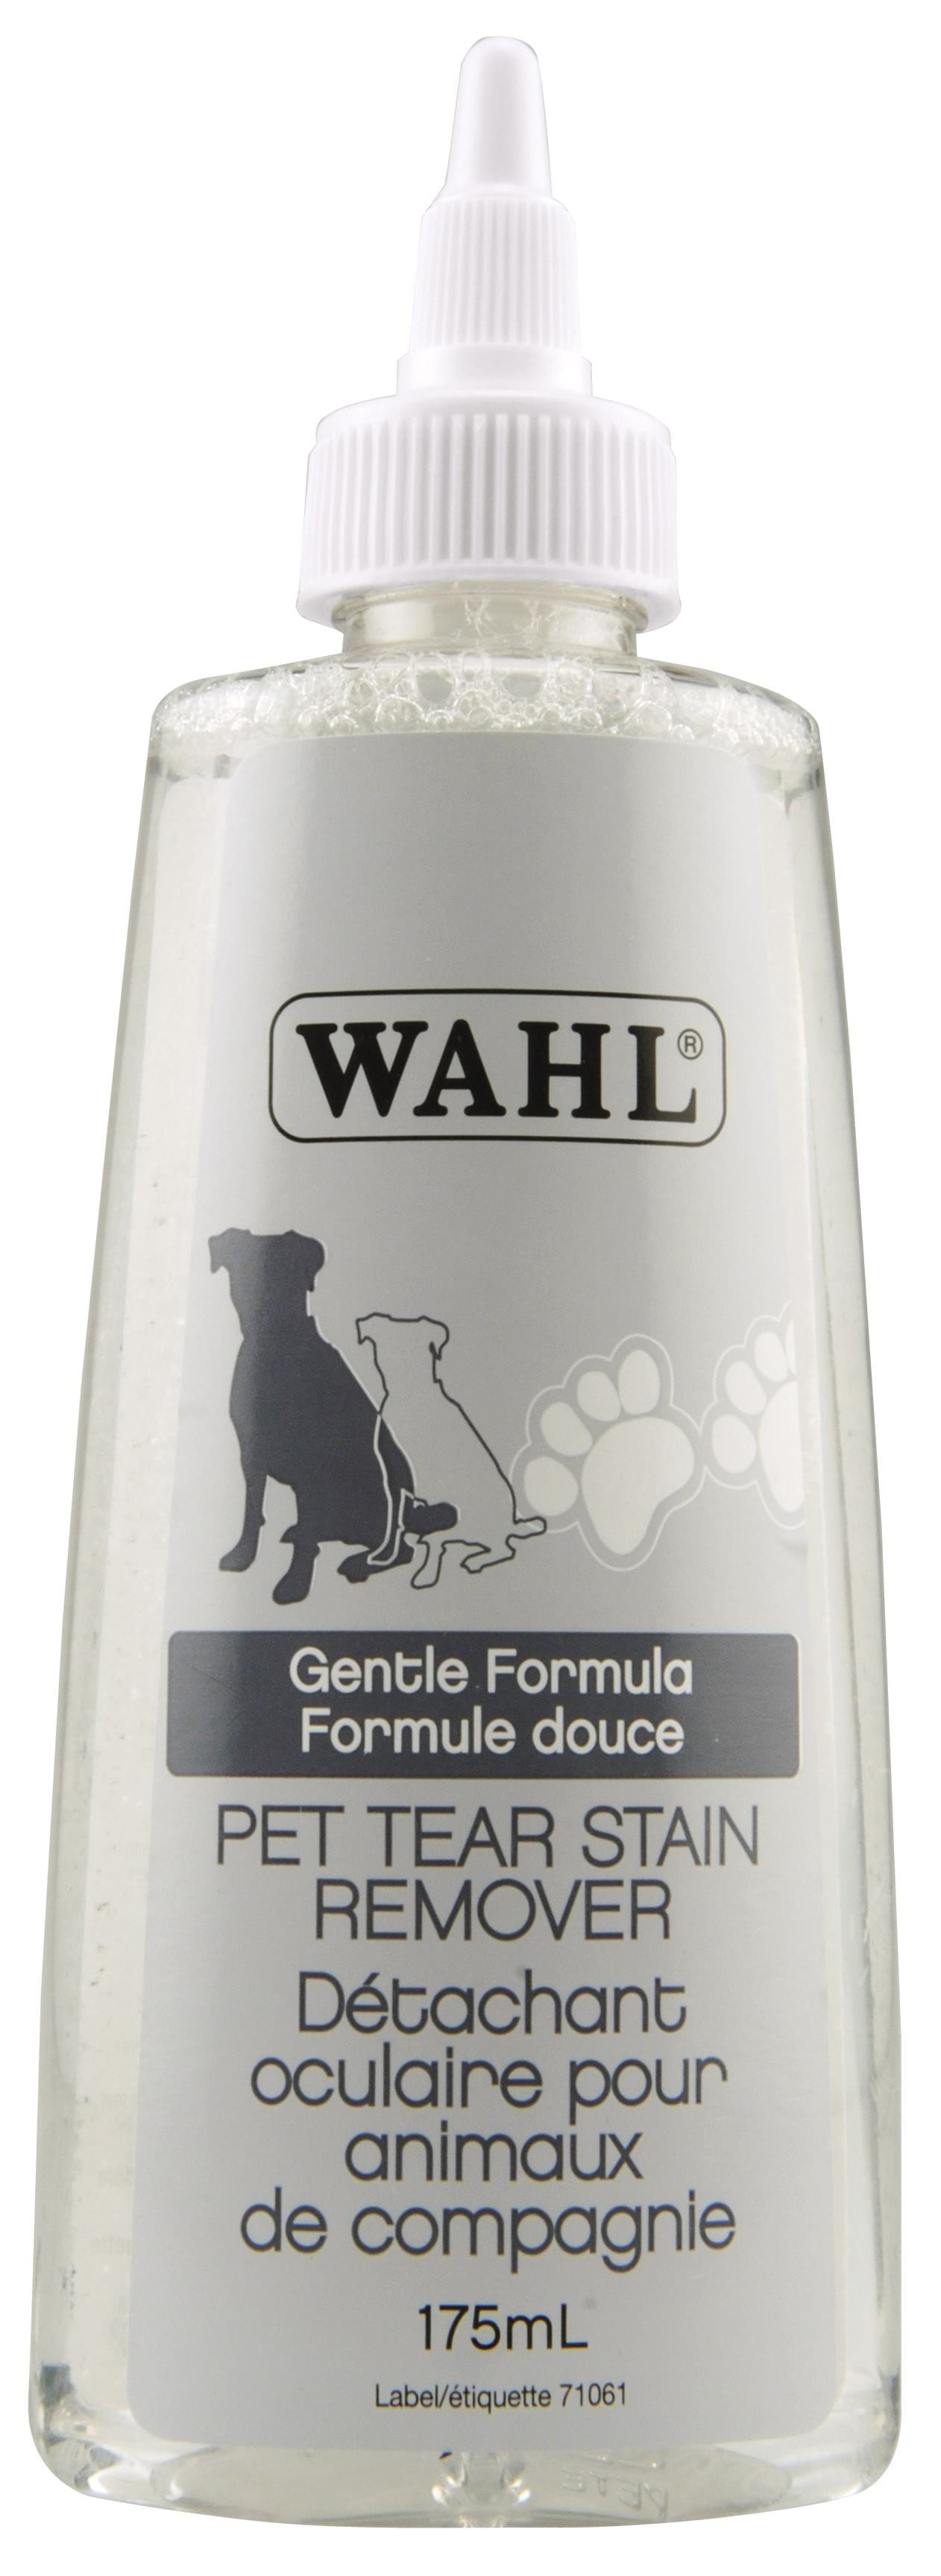 Wahl Pet Tear Stain Remover - Gentle Formula